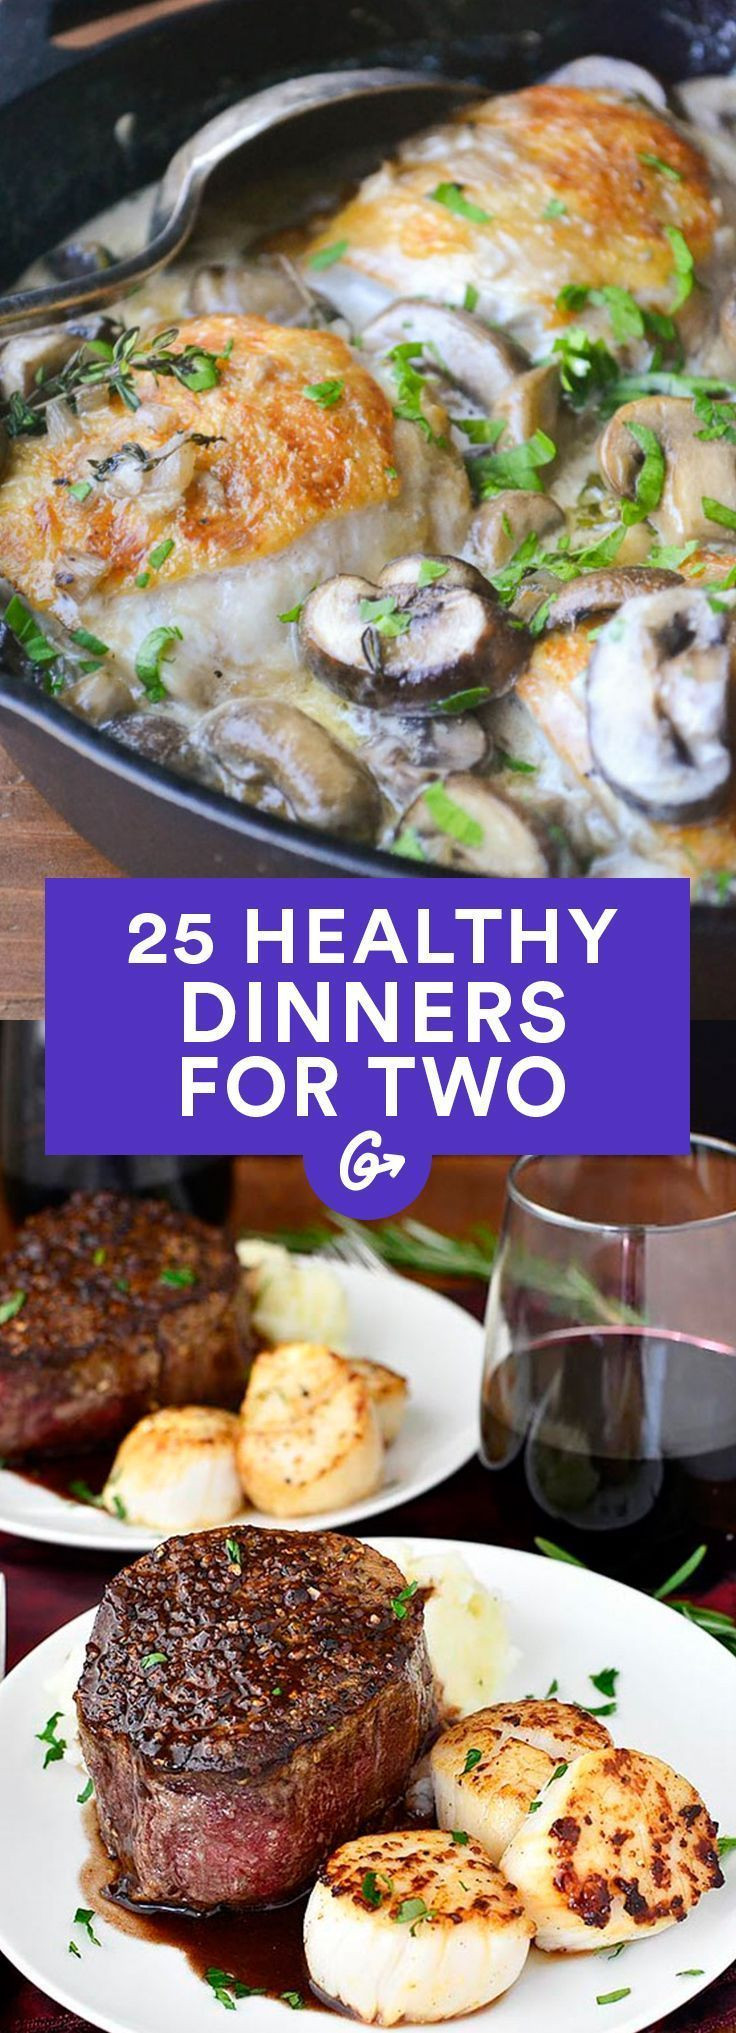 Cheap Healthy Dinners For 2  100 Healthy Dinner Recipes on Pinterest